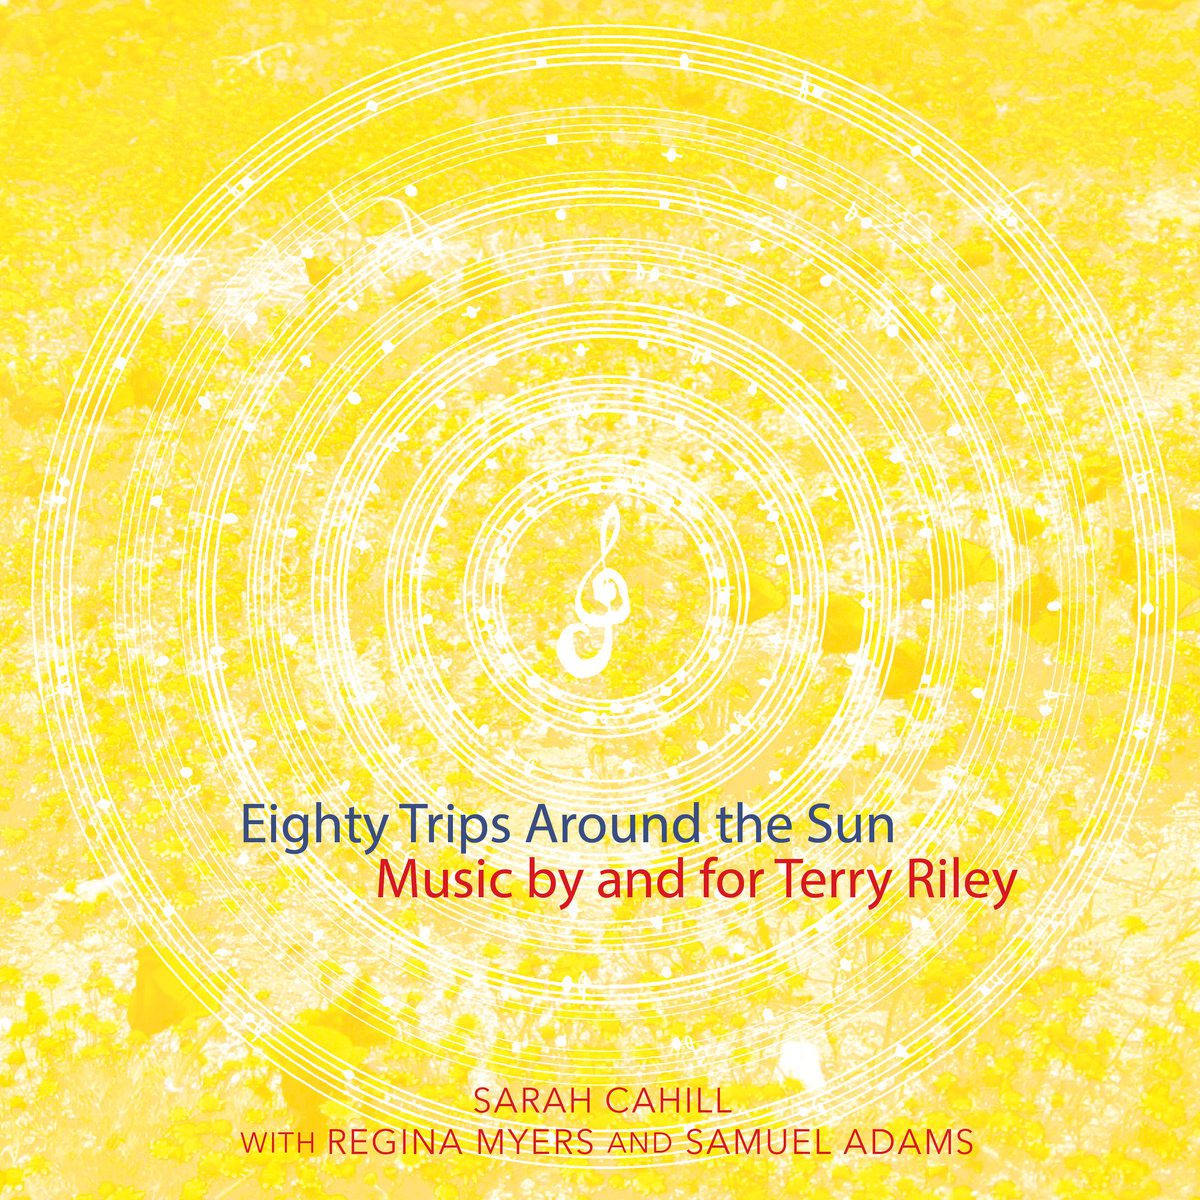 (Sarah Cahill) - Eighty Trips Around the Sun / Music by and for Terry Riley